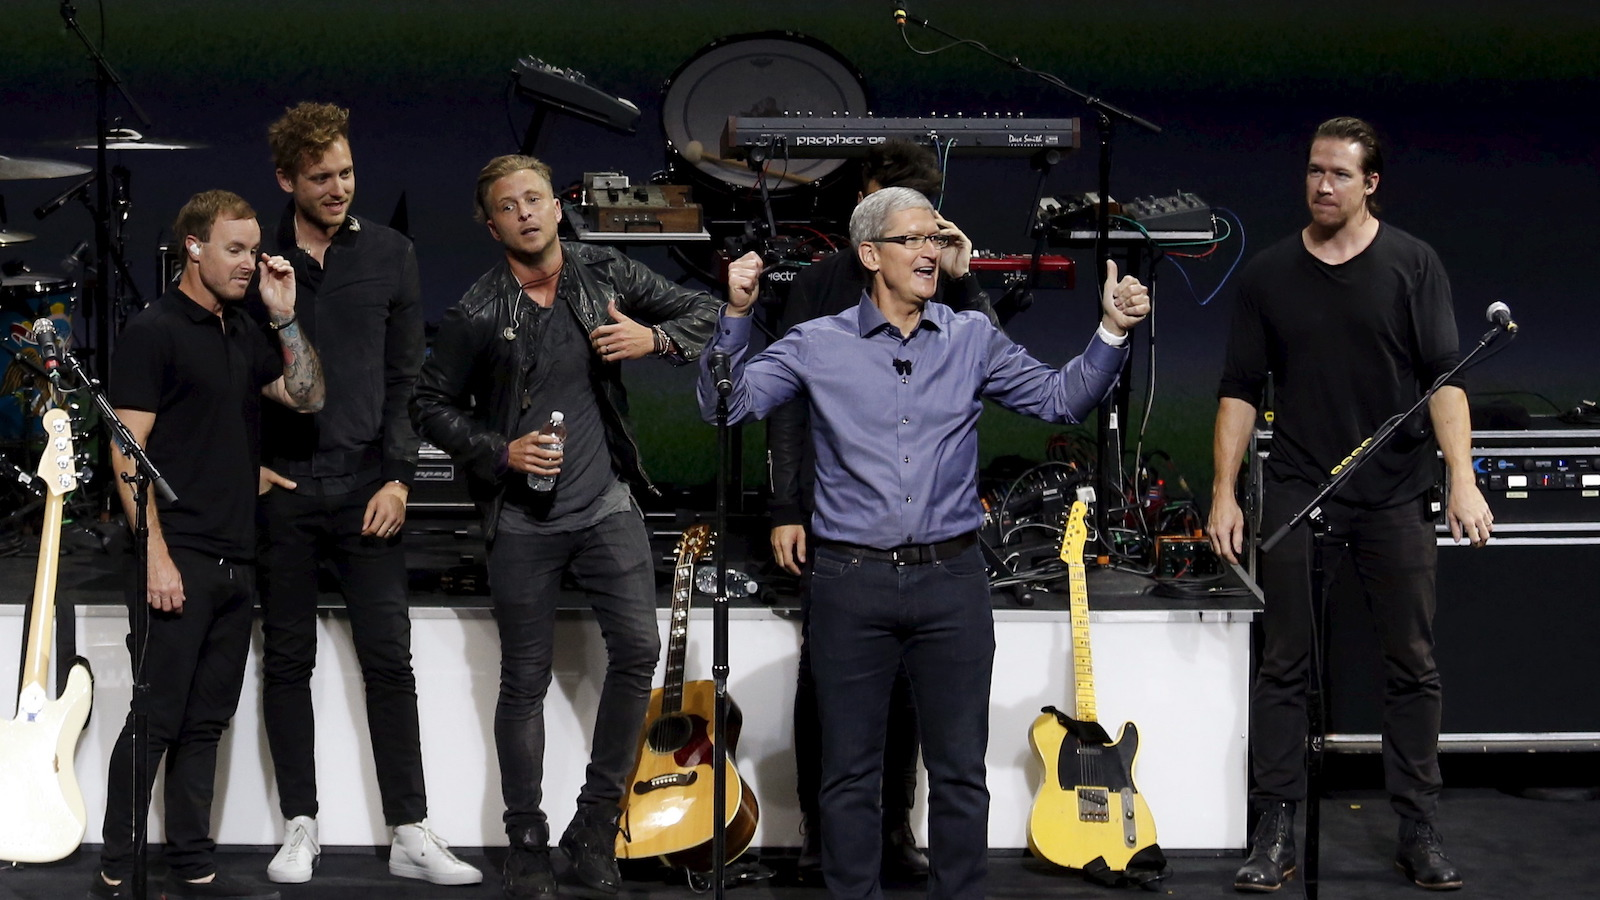 Apple Inc's CEO Tim Cook thanks the audience after One Republic performed at an Apple media event in San Francisco, California, September 9, 2015. Cook unveiled a new version of its Apple TV product with an app store and a voice-controlled remote control, part of a trio of announcements aimed at revamping its product line. REUTERS/Beck Diefenbach - RTSDK1